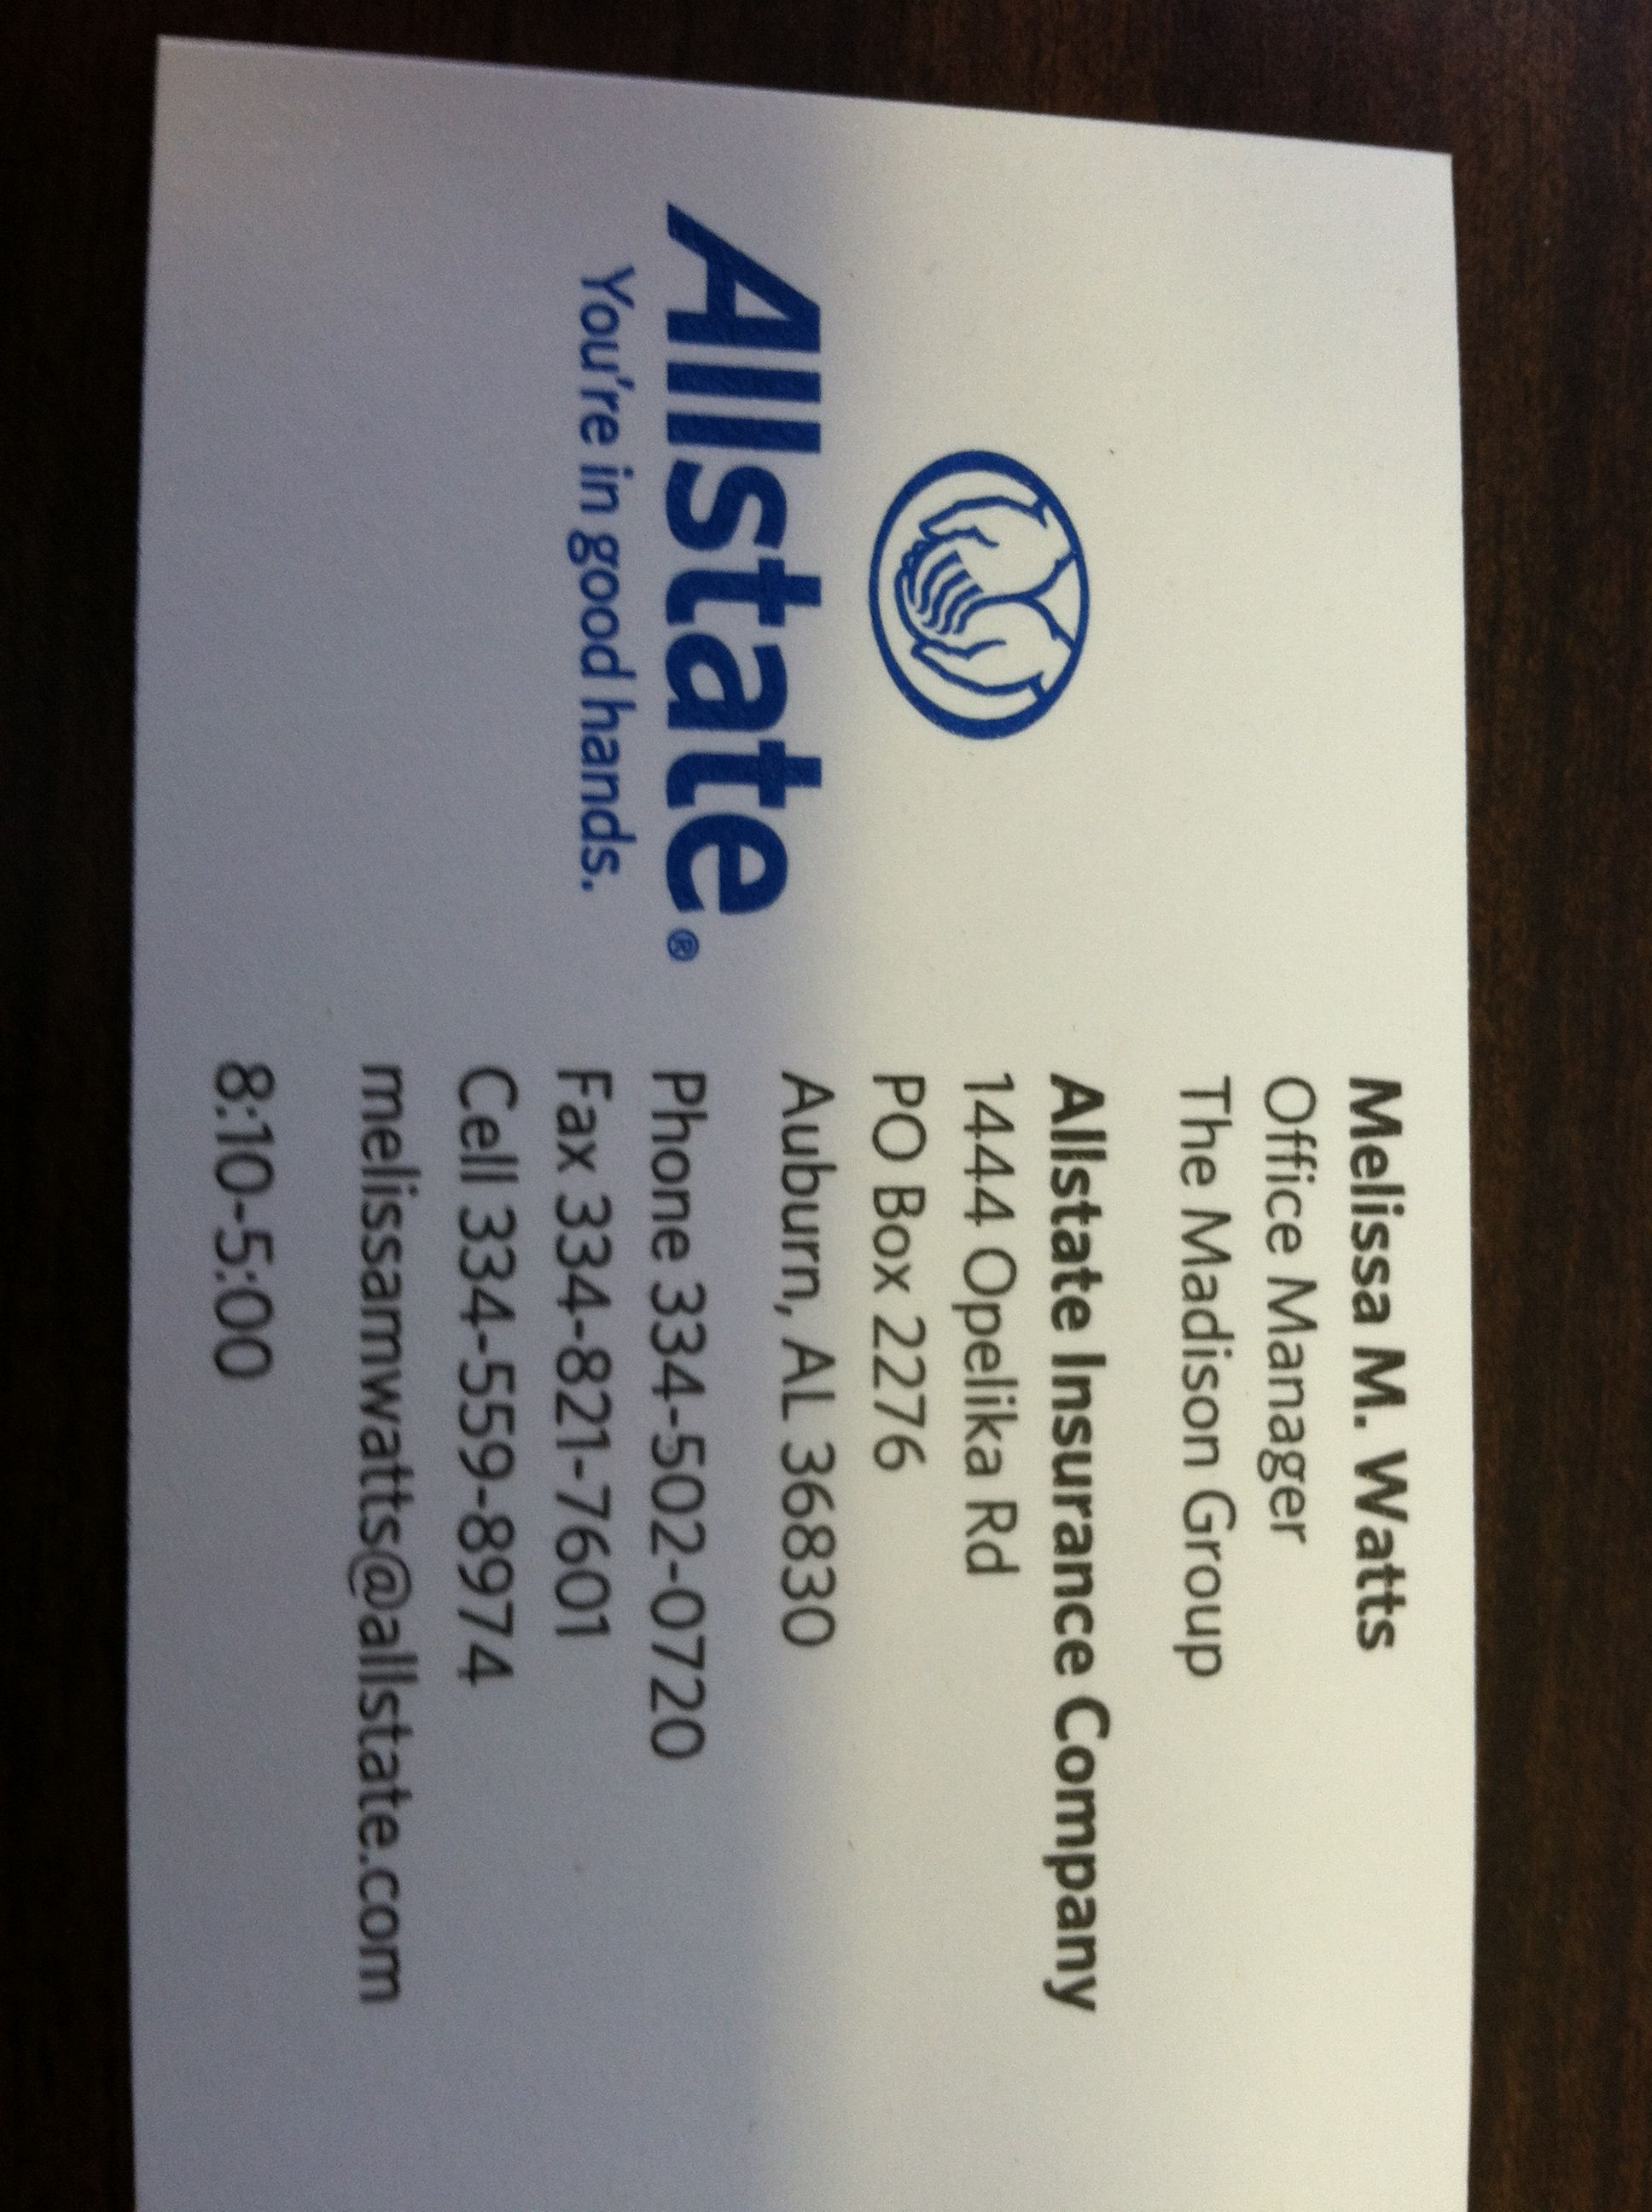 Allstate Quotes Allstate Insurance Cocall Me For A Quote 3345020720